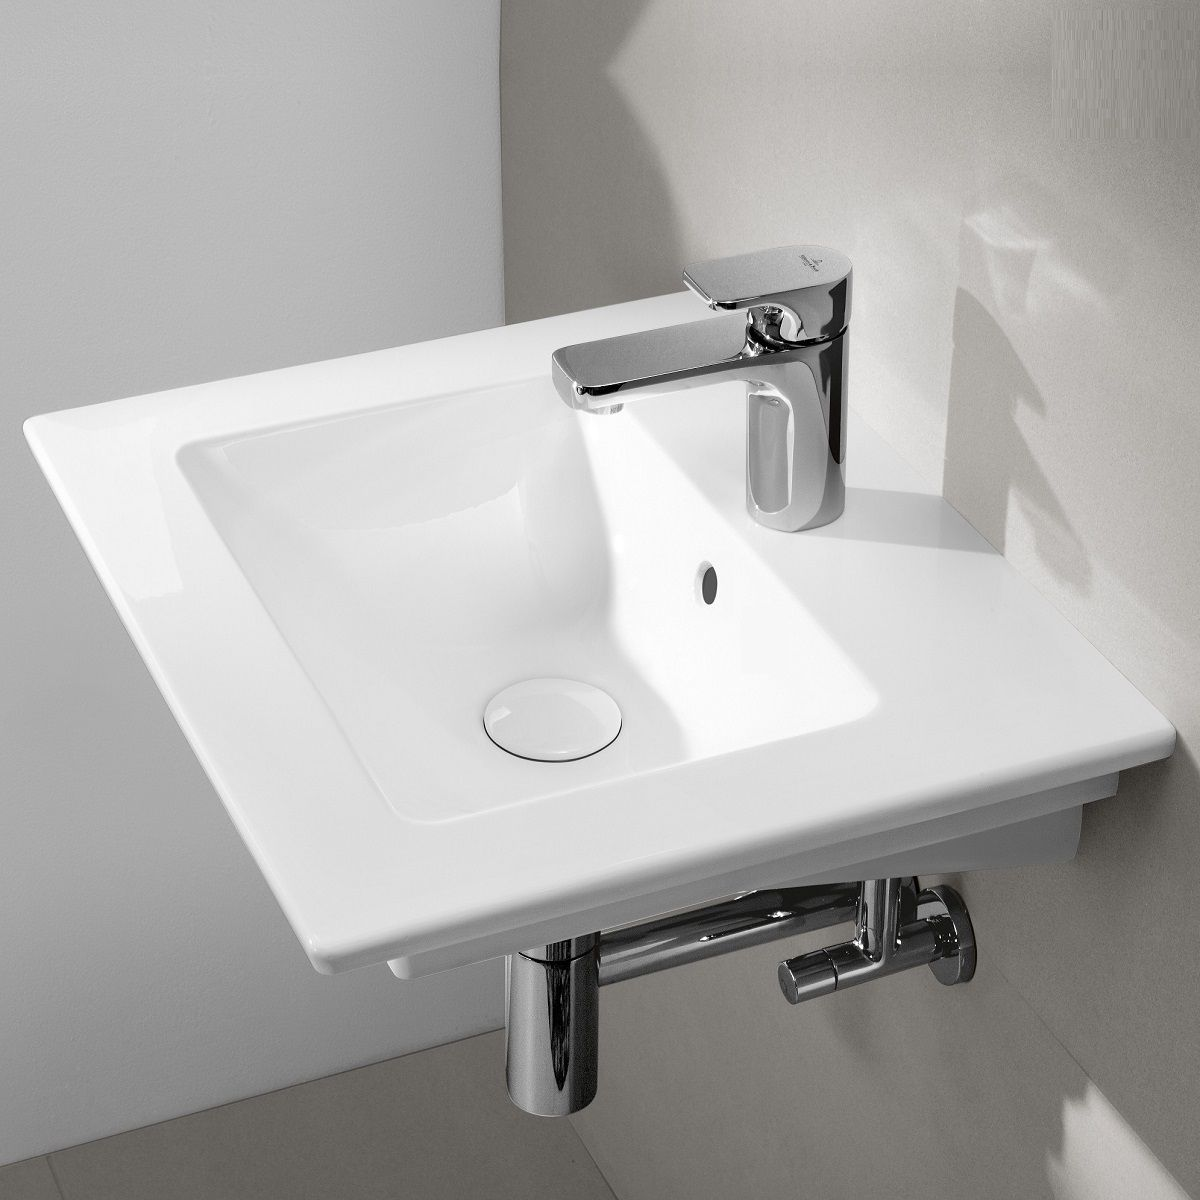 Venticello Villeroy Und Boch Villeroy And Boch Venticello Medium Basin